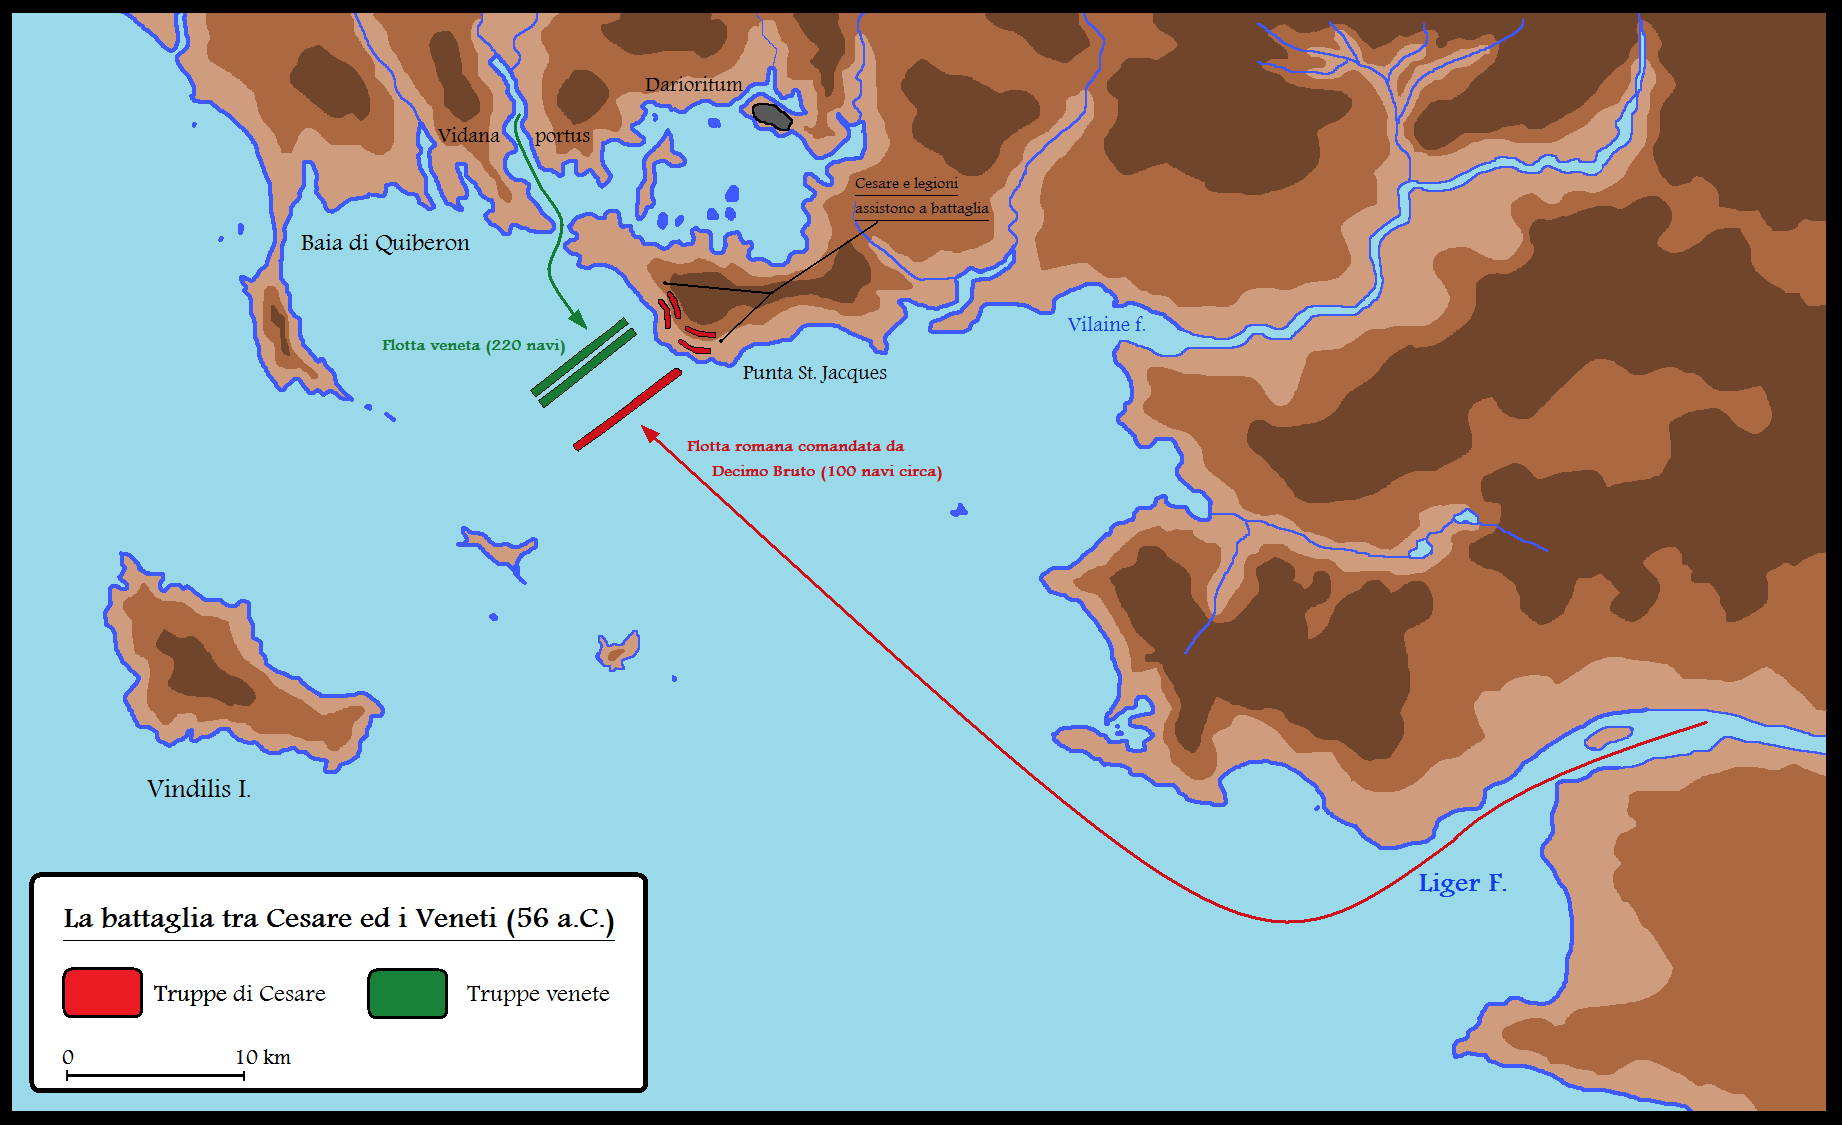 Depiction of the Naval Movements During the Battle Against the Veneti in 56 B.C.